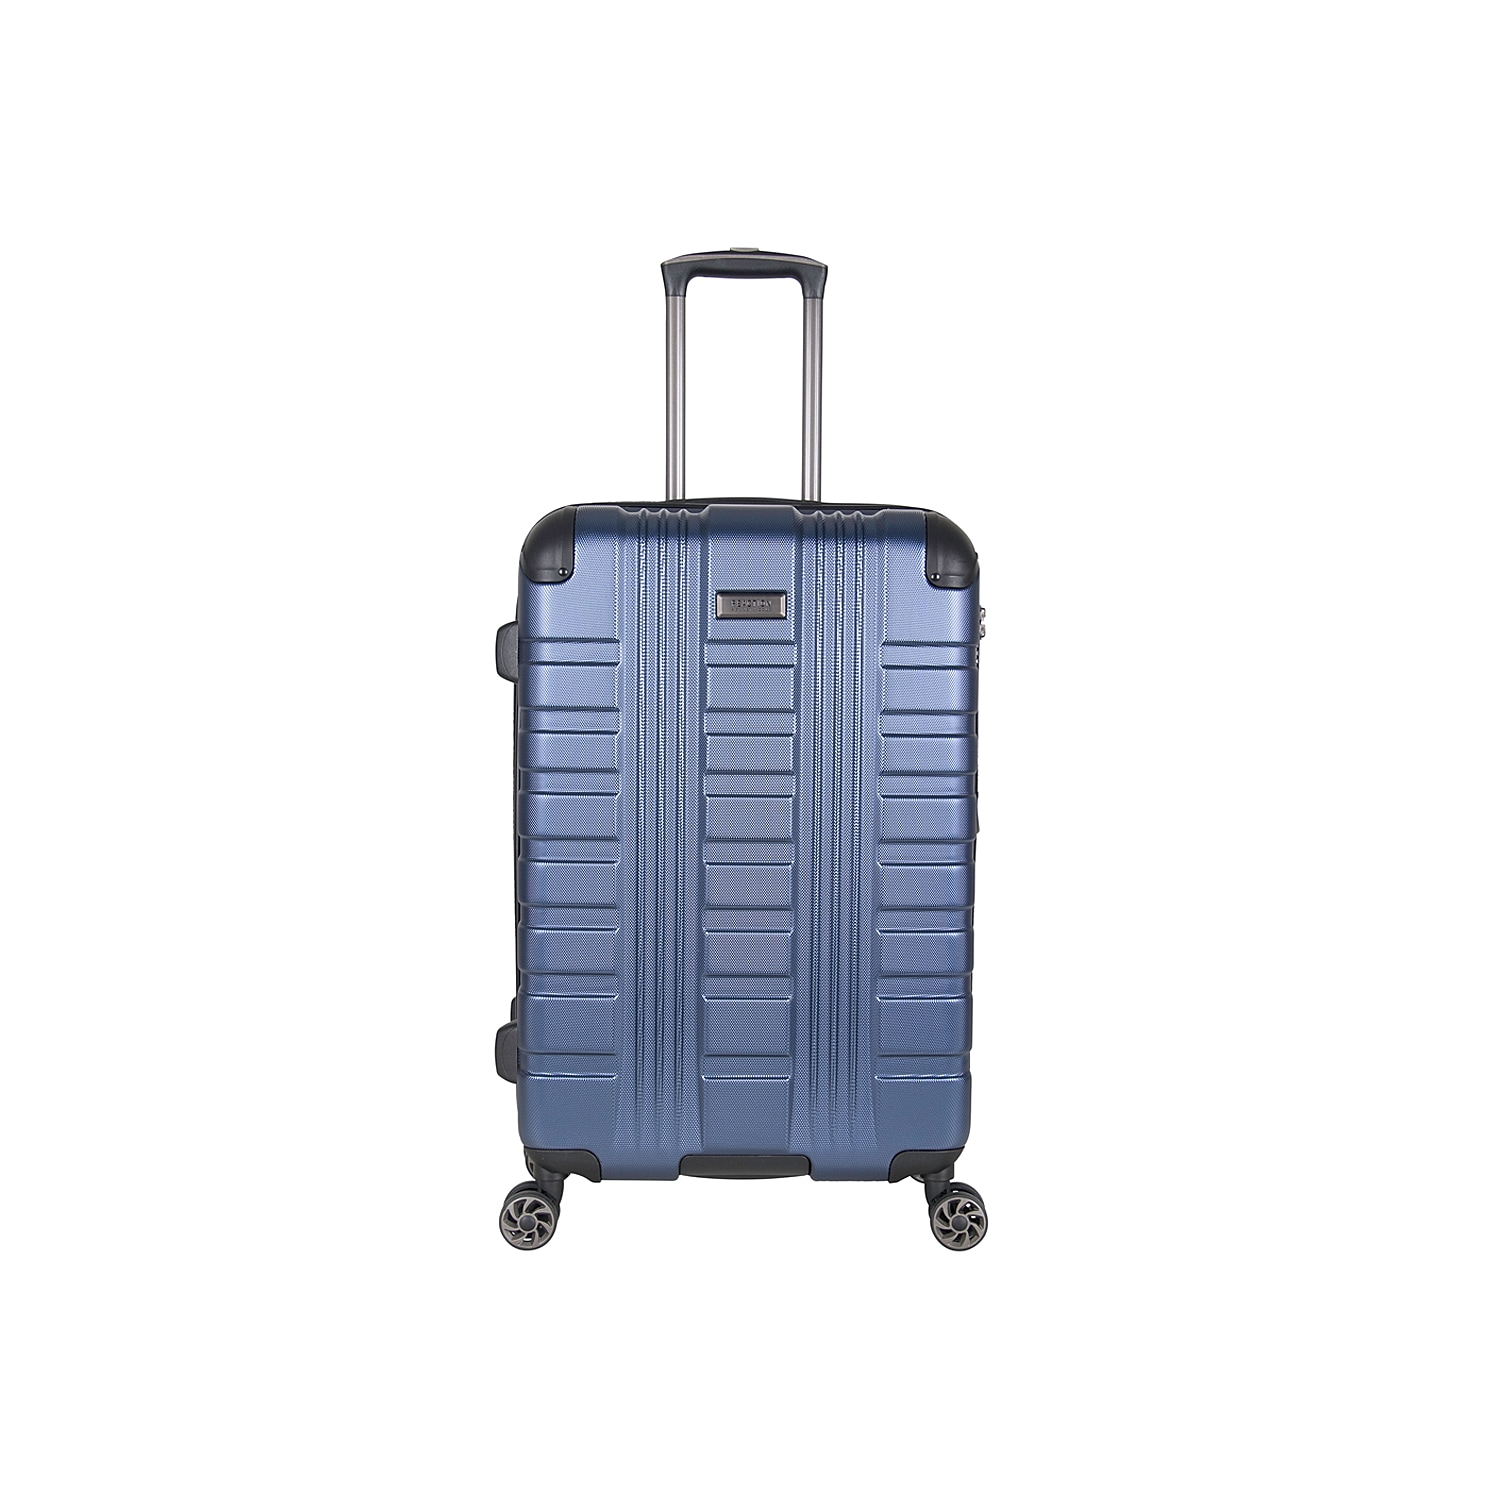 Cruise through airport terminals when you travel with the Kenneth Cole Embossed expandable suitcase. This lightweight luggage is fitted with 4 multi-directional spinners and a durable hardcase exterior that\\\'s protected by molded corner guards. Self-repairing coil zippers endure long-lasting use, and a built-in TSA lock keeps your valuables secure.